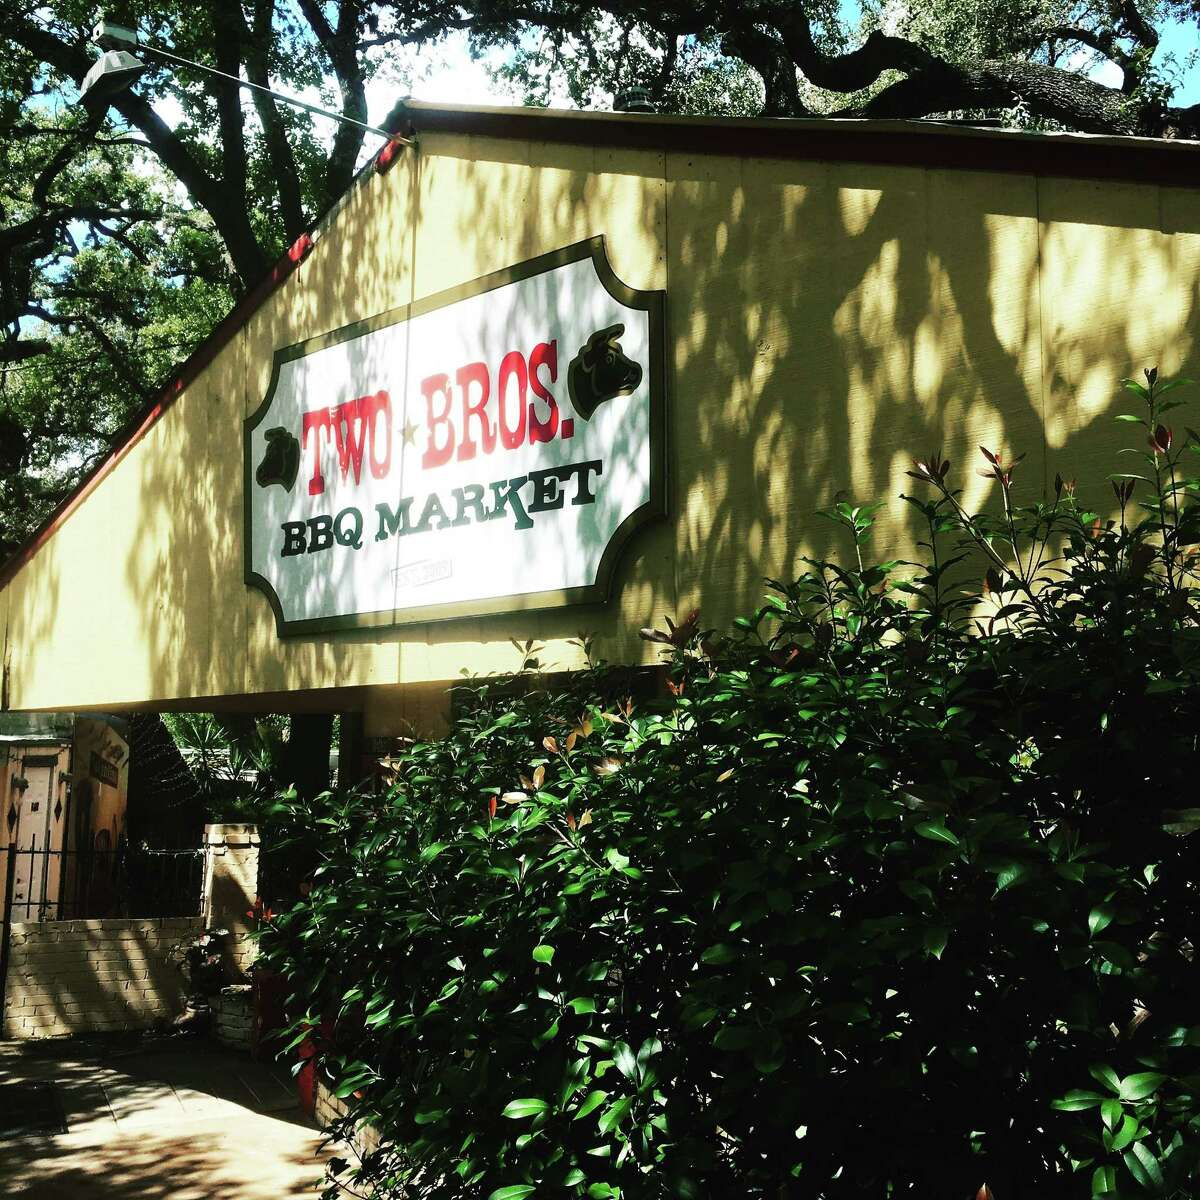 Two Bros BBQ Market 13656 West AVenue Date: 02/07/2019 Score: 67 Highlights: Observed expired